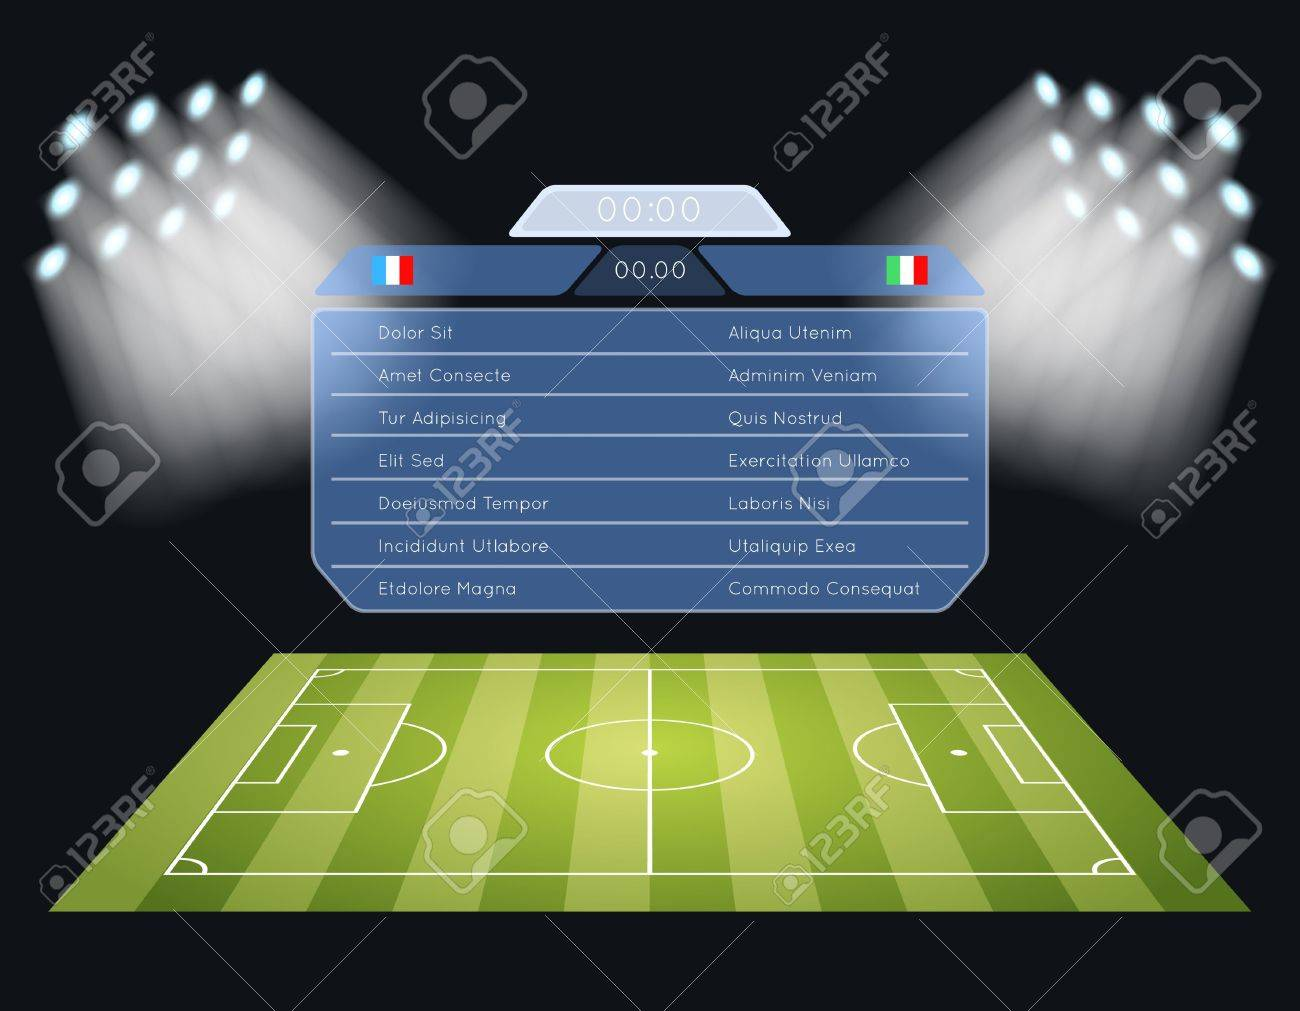 Eclairage Stade De Foot Floodlighting Terrain De Soccer Tableau De Bord Spotlight Et L éclairage Le Sport Match De Football Le Stade Et La Concurrence Championnat Vector